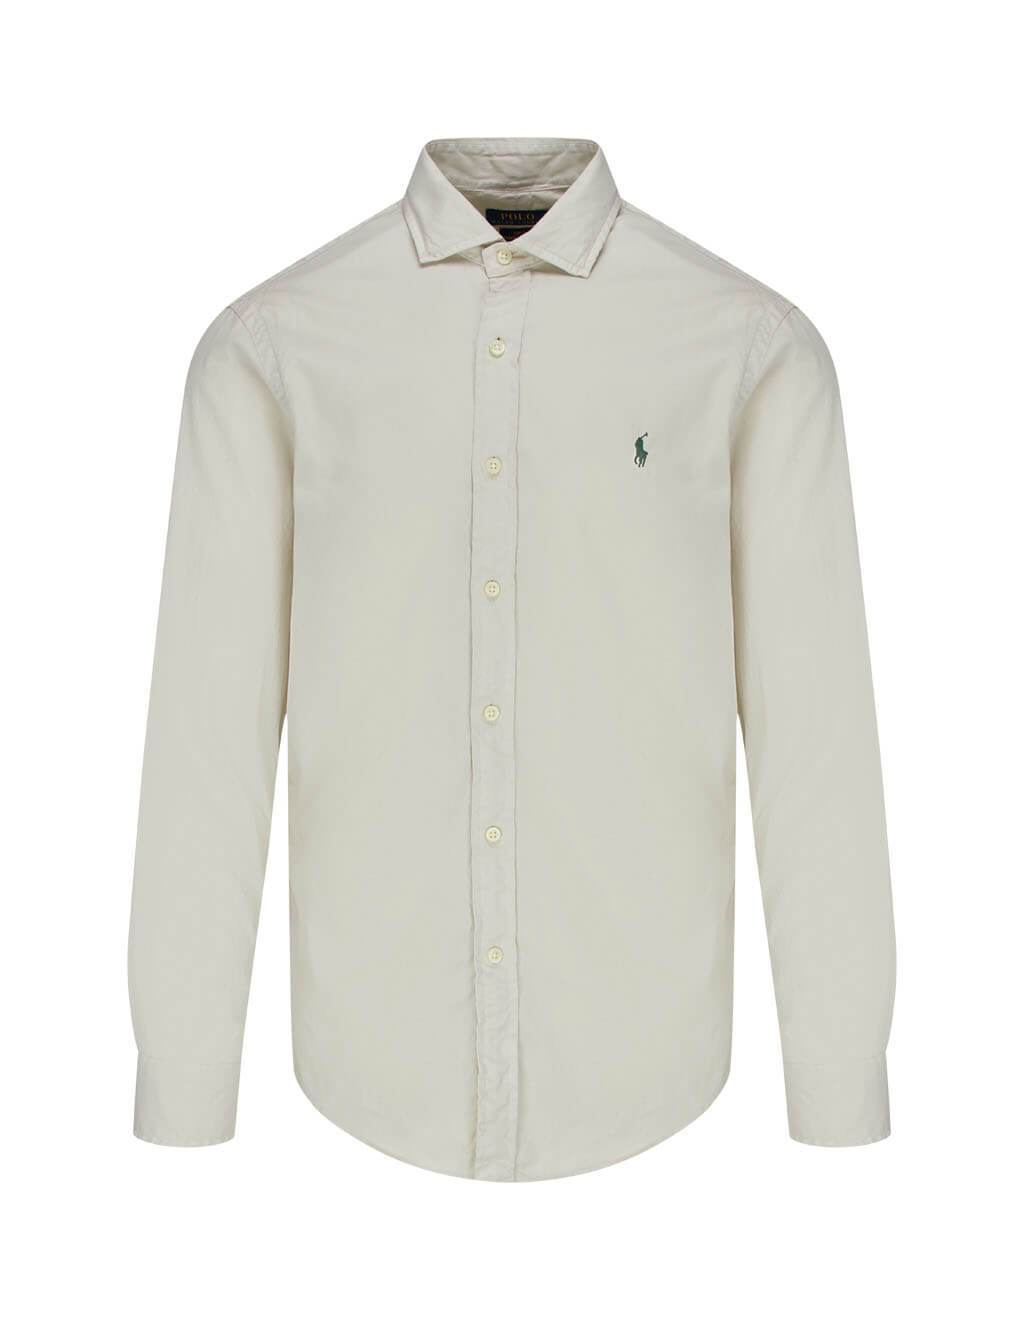 Camicia POLO RALPH LAUREN 004 710818770 Dove grey